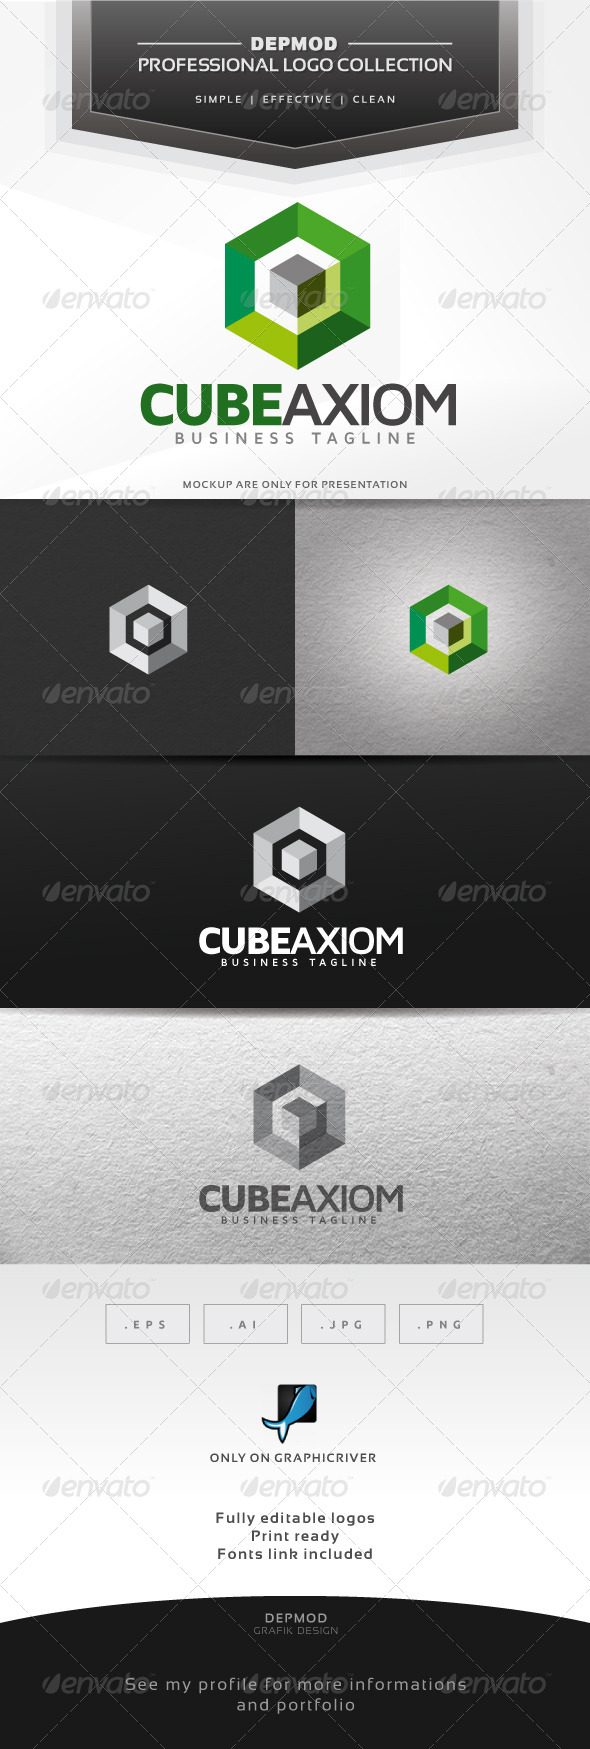 Cube Axiom Logo - Abstract Logo Templates